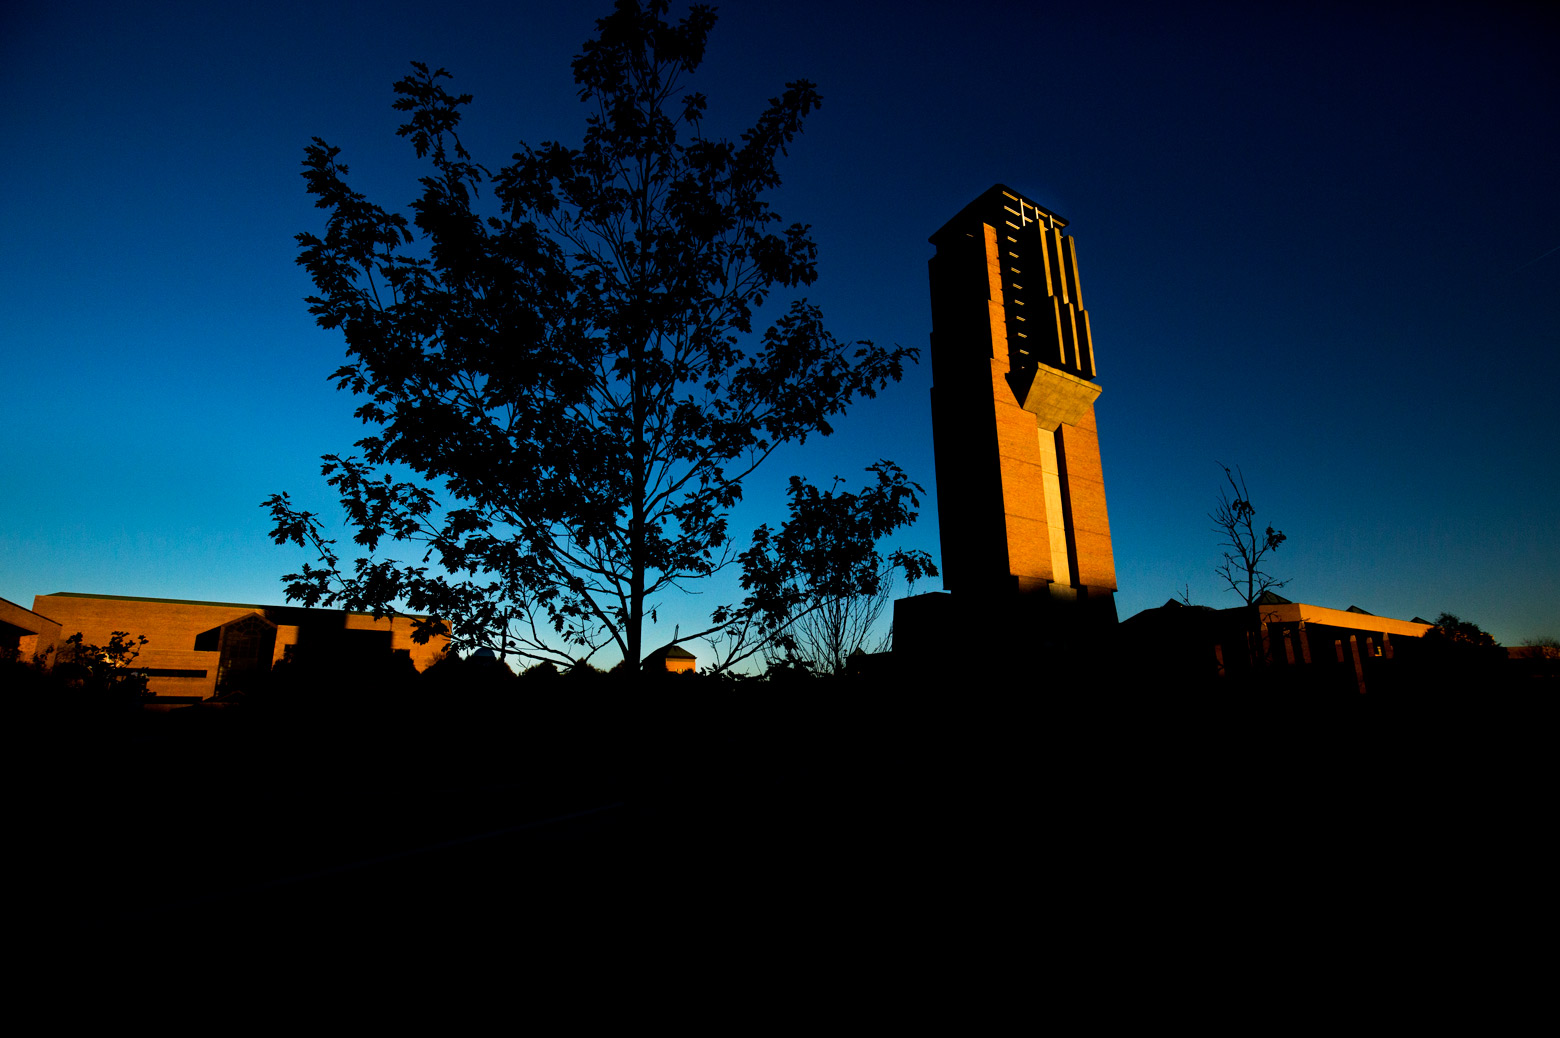 north campus at dawn